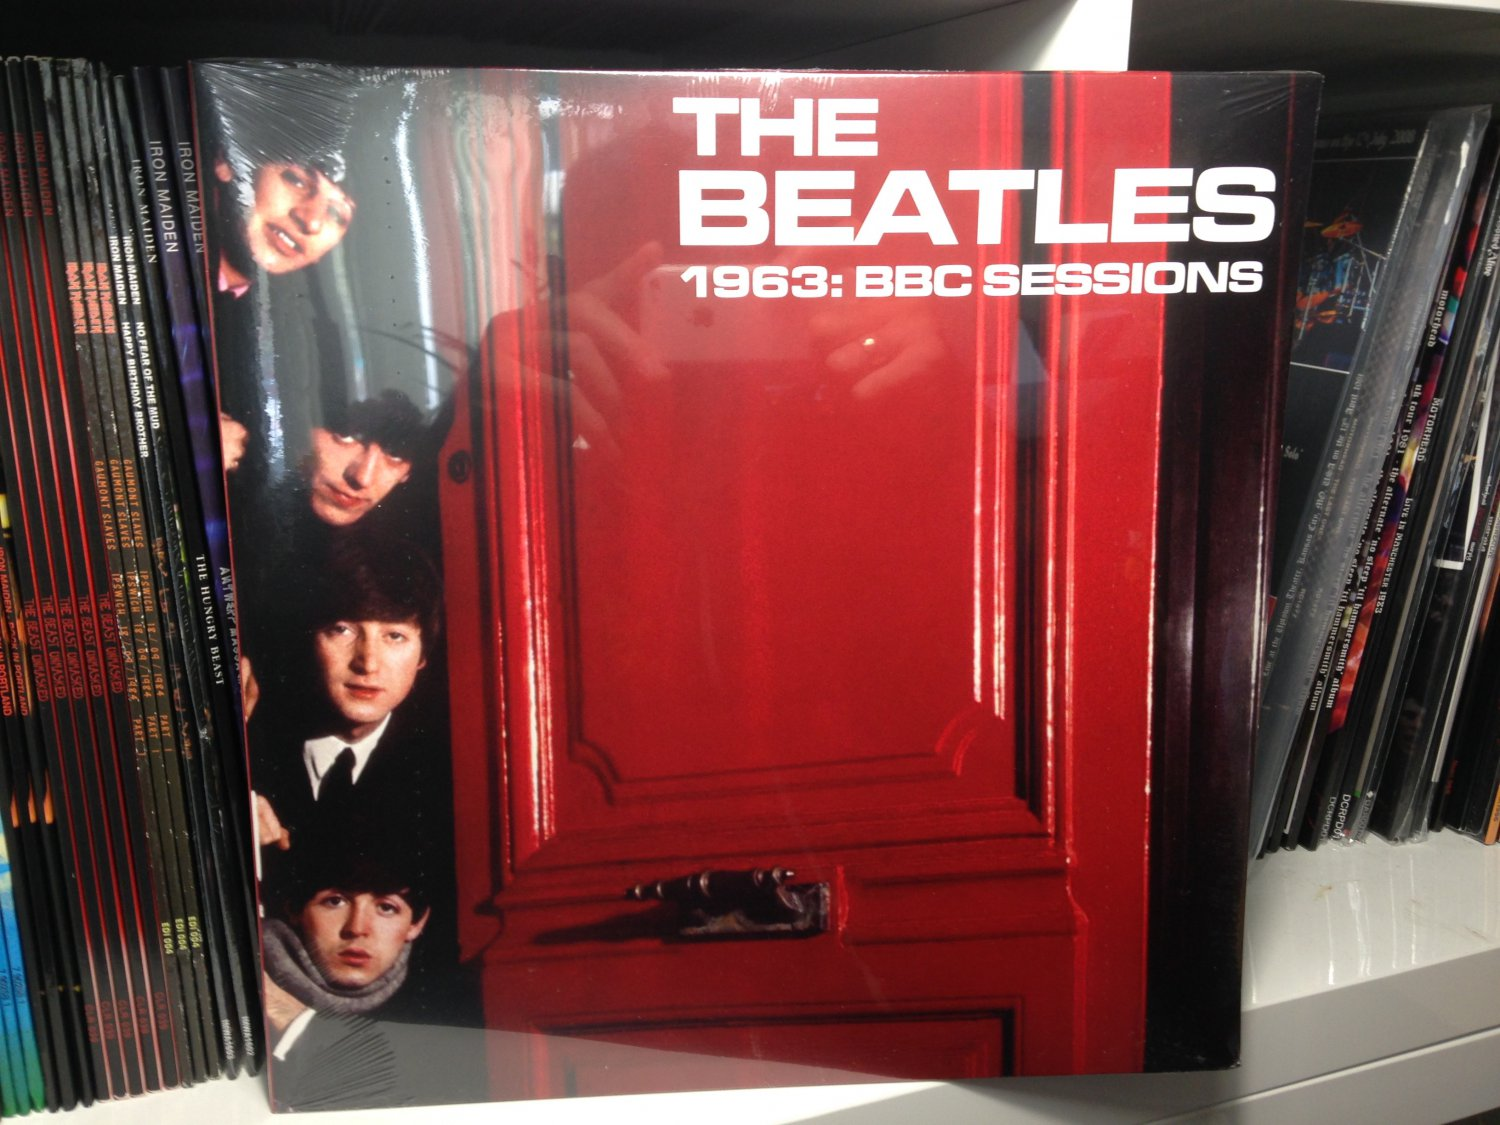 THE BEATLES LP 1963 bbc sessions